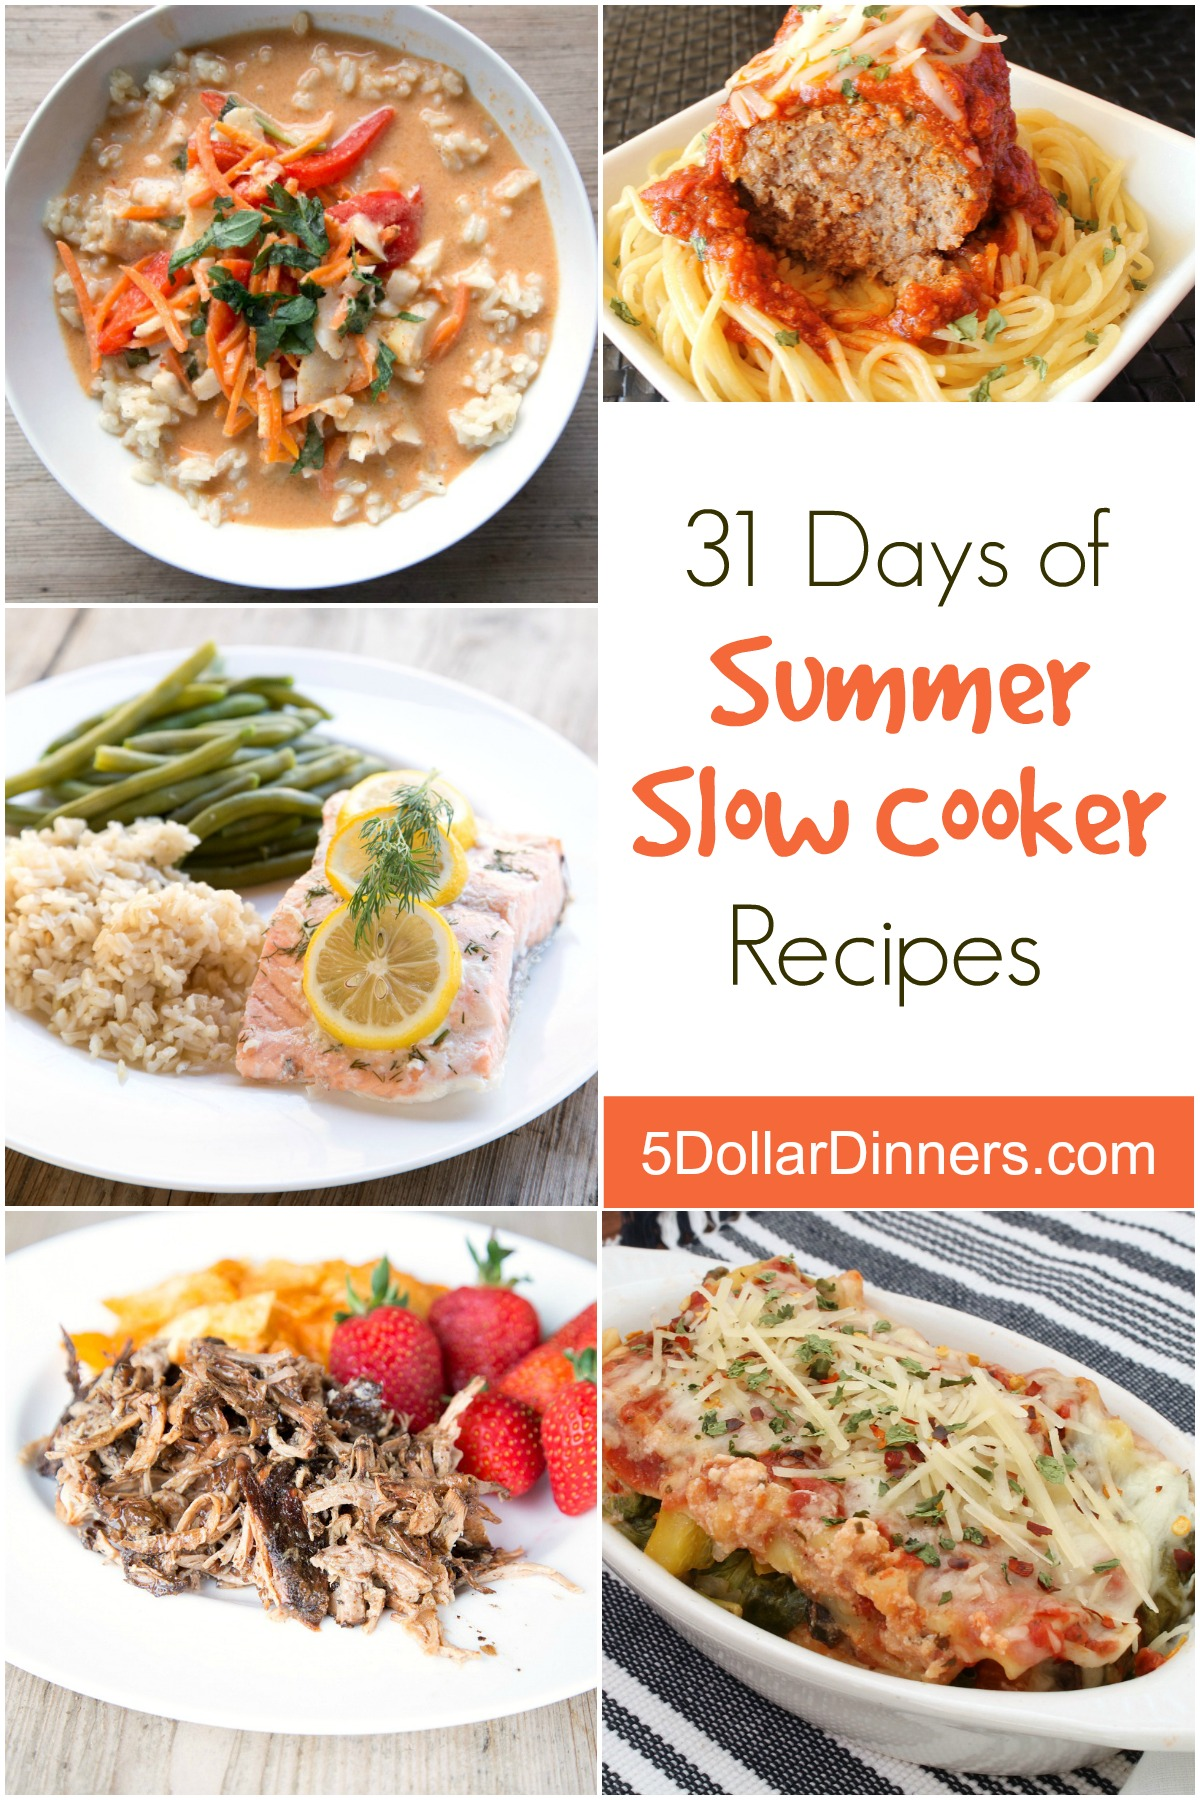 31 Days of Summer Slow Cooker Recipes